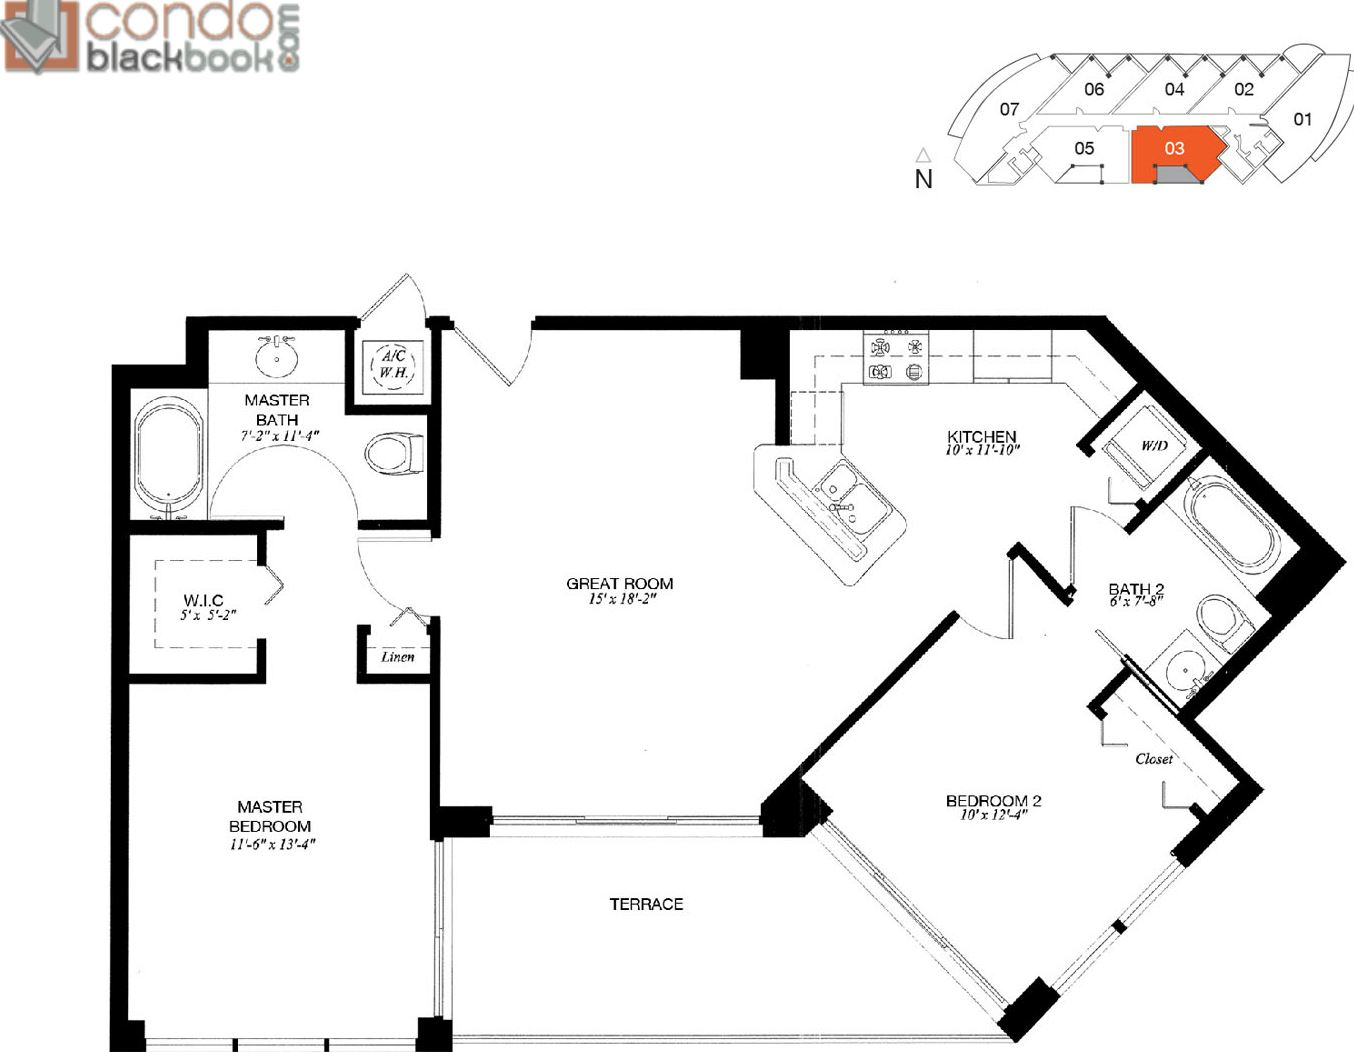 Floor plan for Platinum Edgewater Miami, model 03, line 03, 2/2 bedrooms, 1,007 sq ft